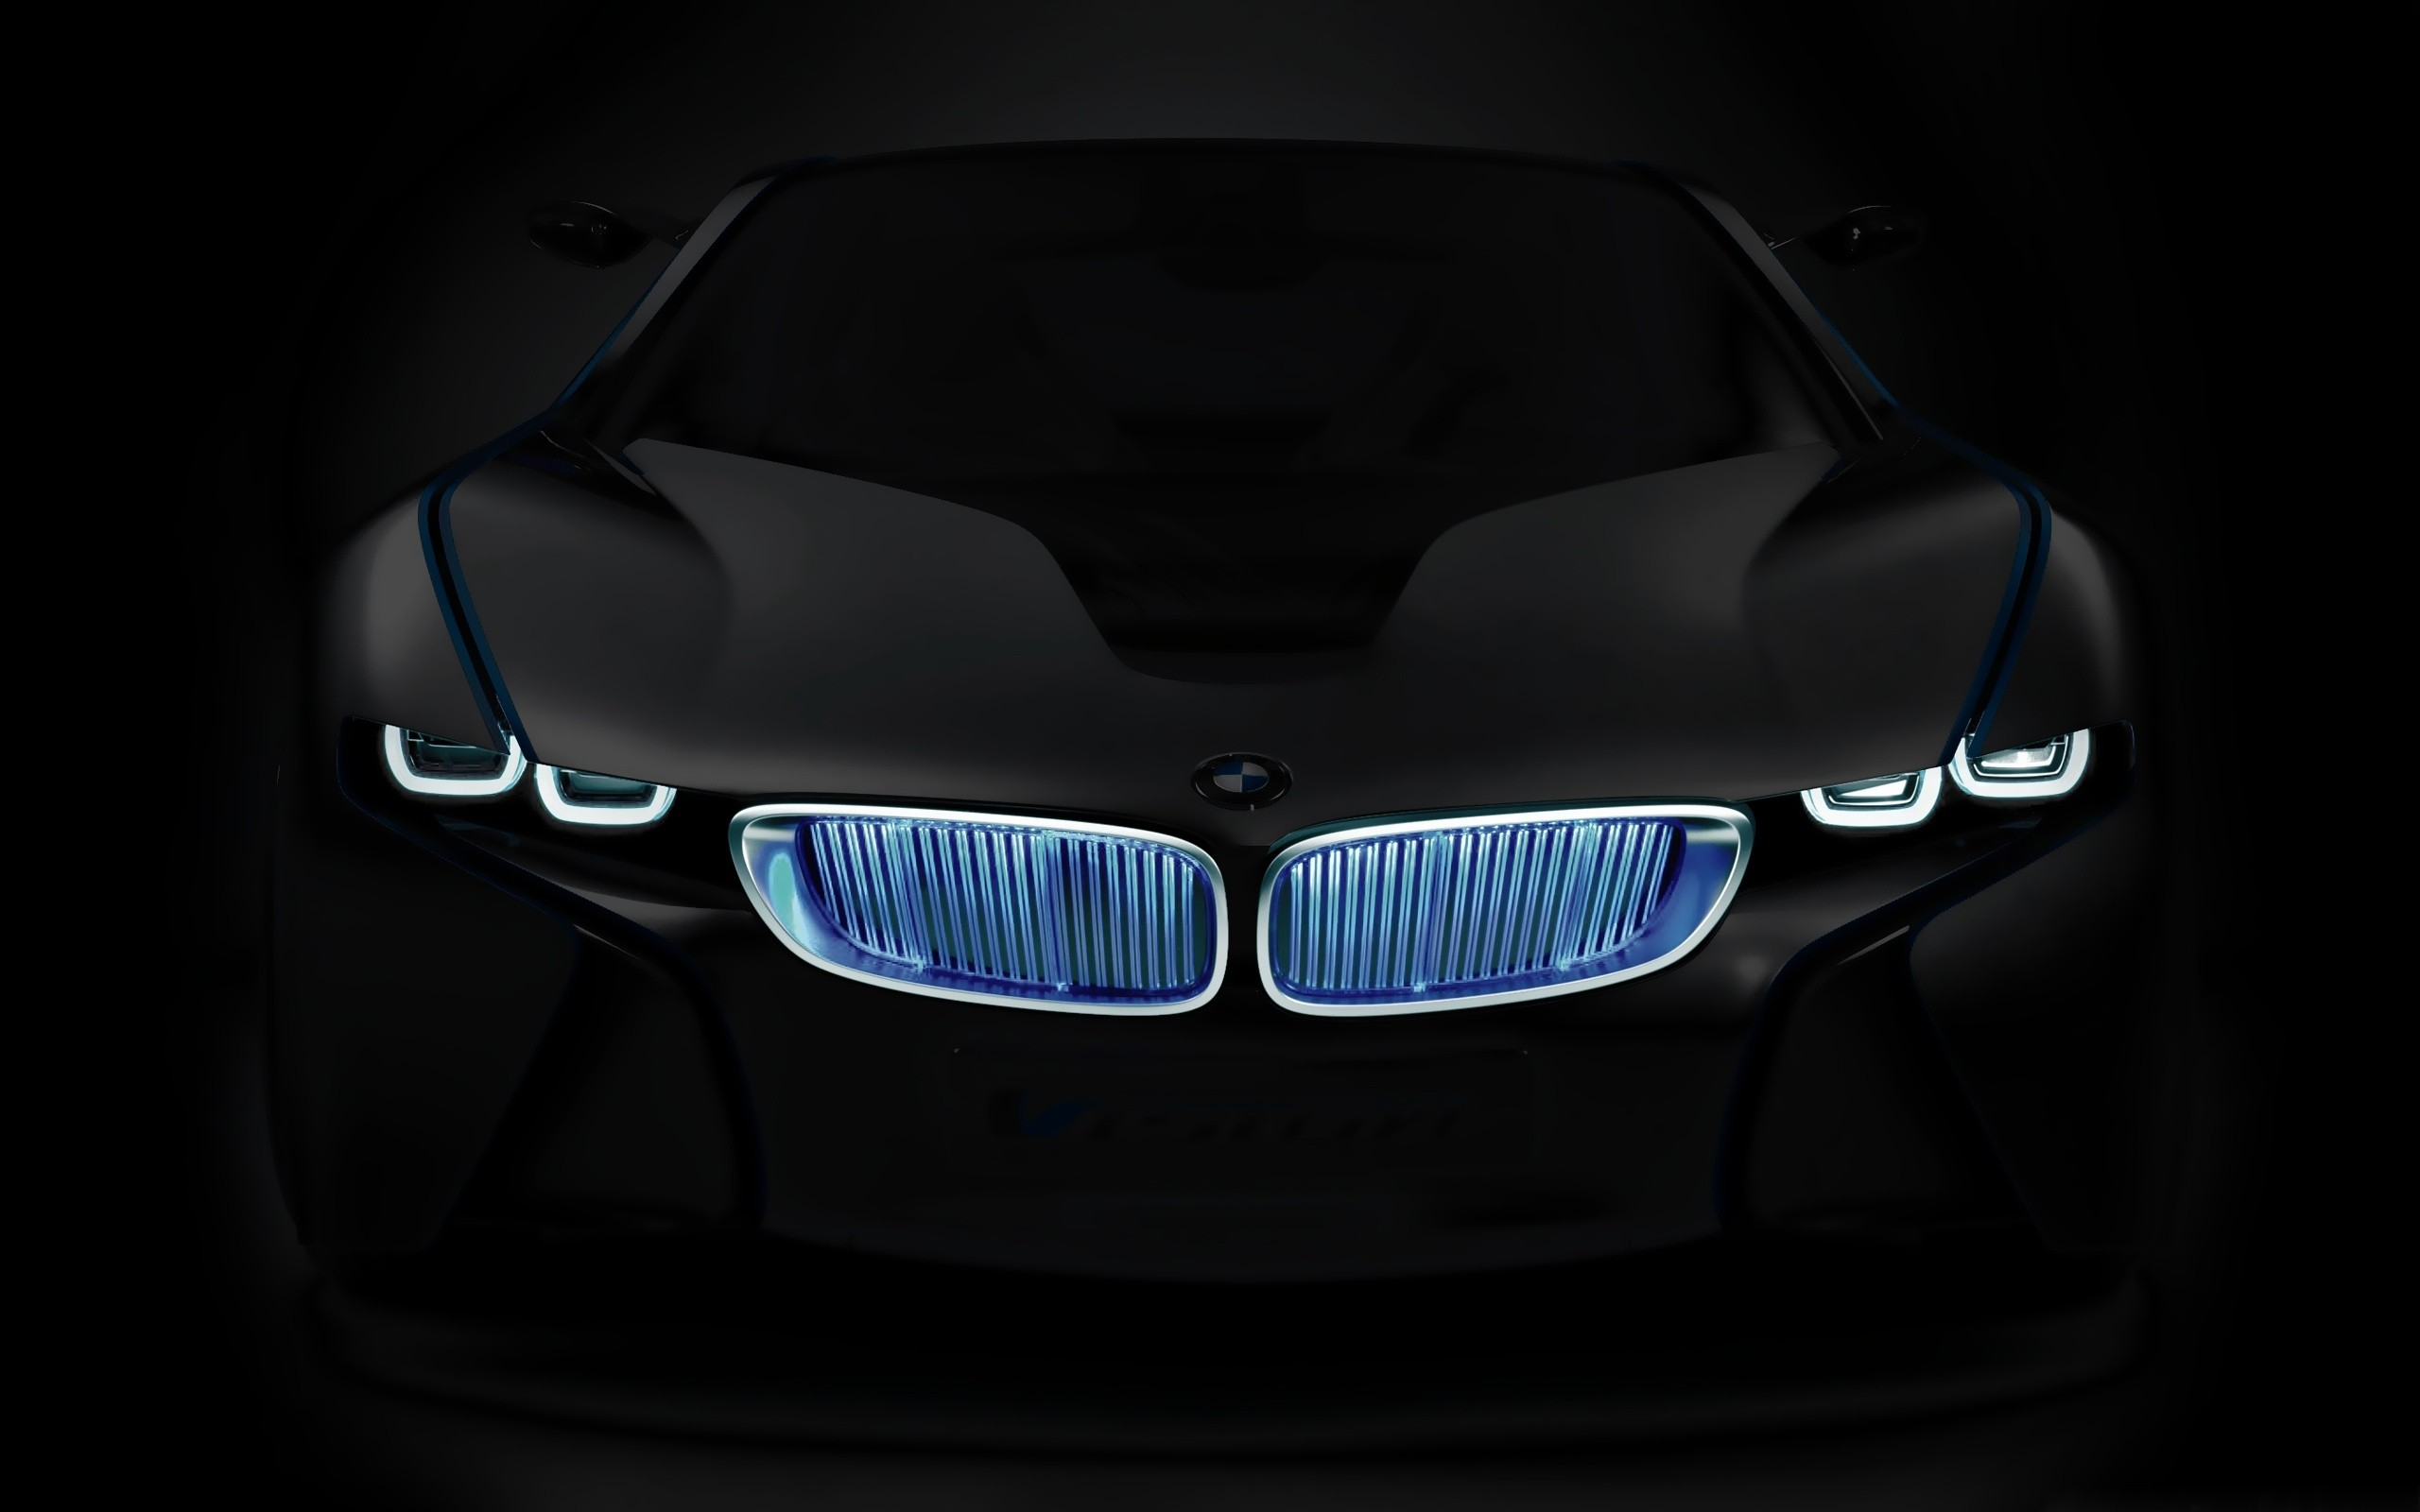 Neon Grill BMW Wallpapers Neon Grill BMW Myspace Backgrounds Neon 2560x1600